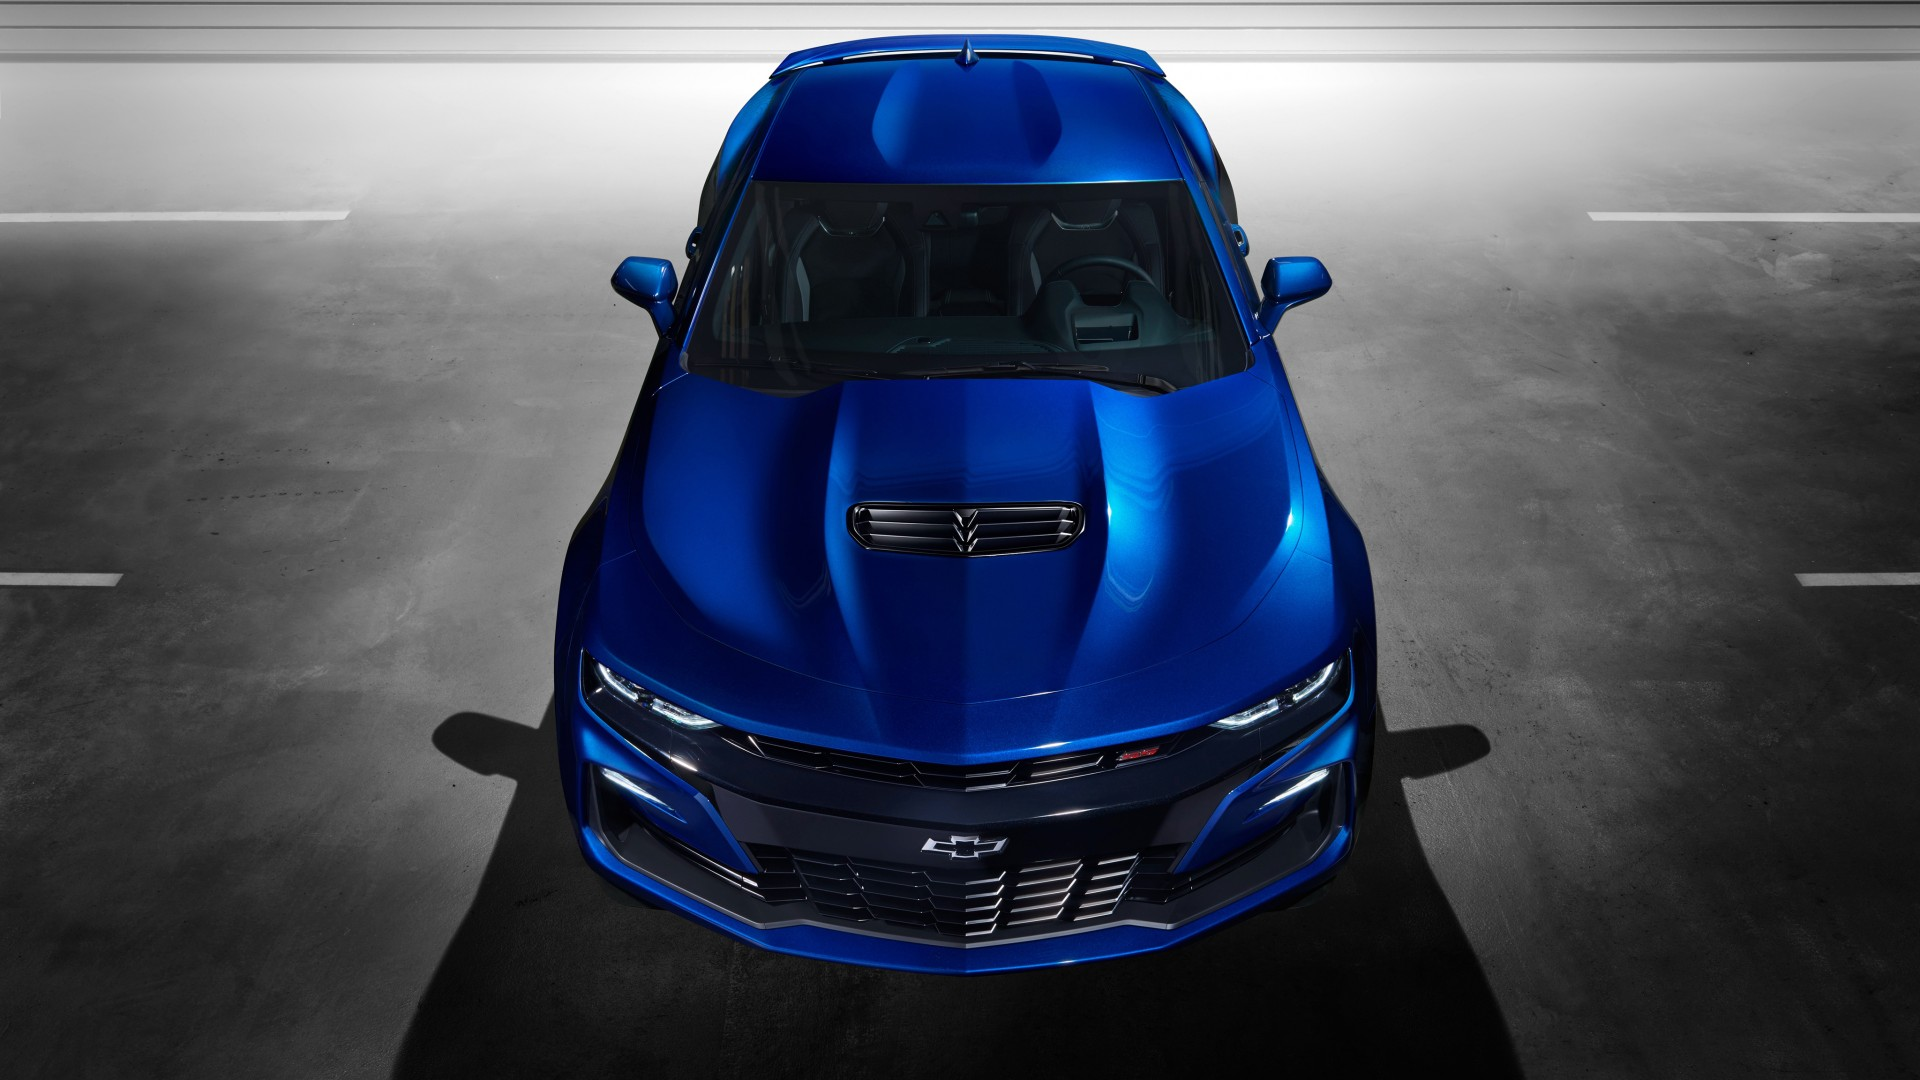 Camaro Zl1 Wallpaper Iphone 2019 Chevrolet Camaro Ss 4k Wallpaper Hd Car Wallpapers